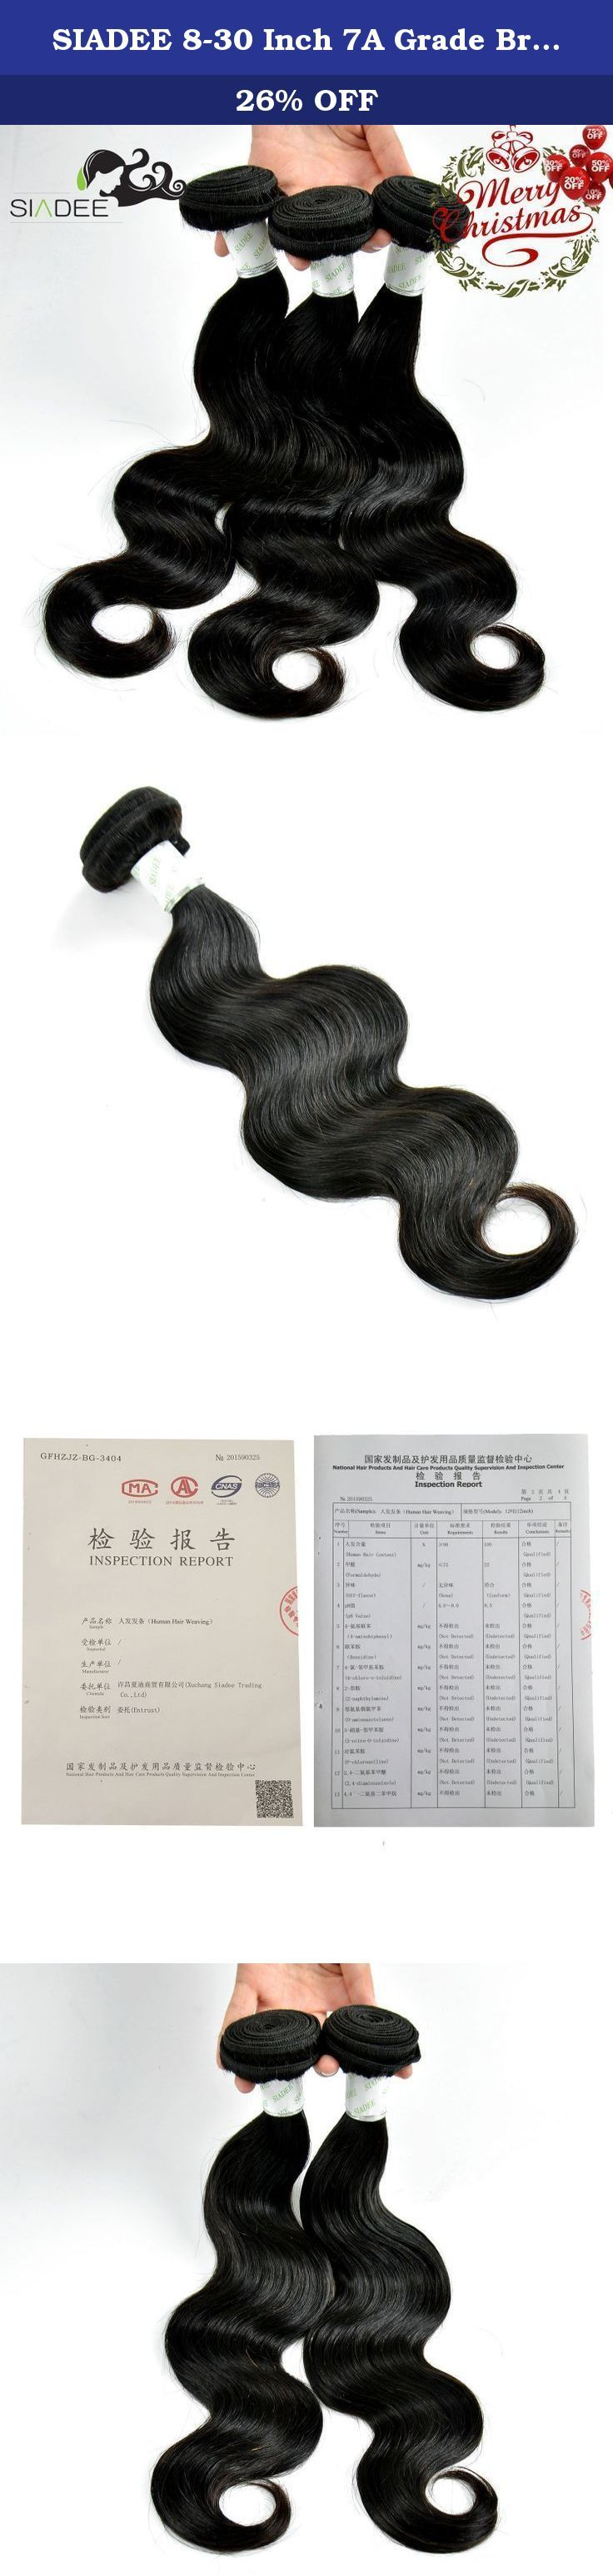 SIADEE 8-30 Inch 7A Grade Brazilian Virgin Human Hair Extensions Body Wave, Pack of 3, 100g/bundle, Natural Color Hair Bundles (8 8 8). SIADEE Factory Manufacturing Best Price-Quality 100% Brazilian Human Virgin Hair Bundles Brazilian Hair Virgin Human Hair 3 Bundles Info: 1)Brand: SIADEE 2)Materials: 100% Human Hair 3)Quantity: 3 Bundles in one Box, Per Bundle is 95~105g. 4)Color: Natural Color 5)Hair Style: Body Wave 6)Hair Grade:7a Virgin Human Hair 8)Quality: No tangle, No Shedding…